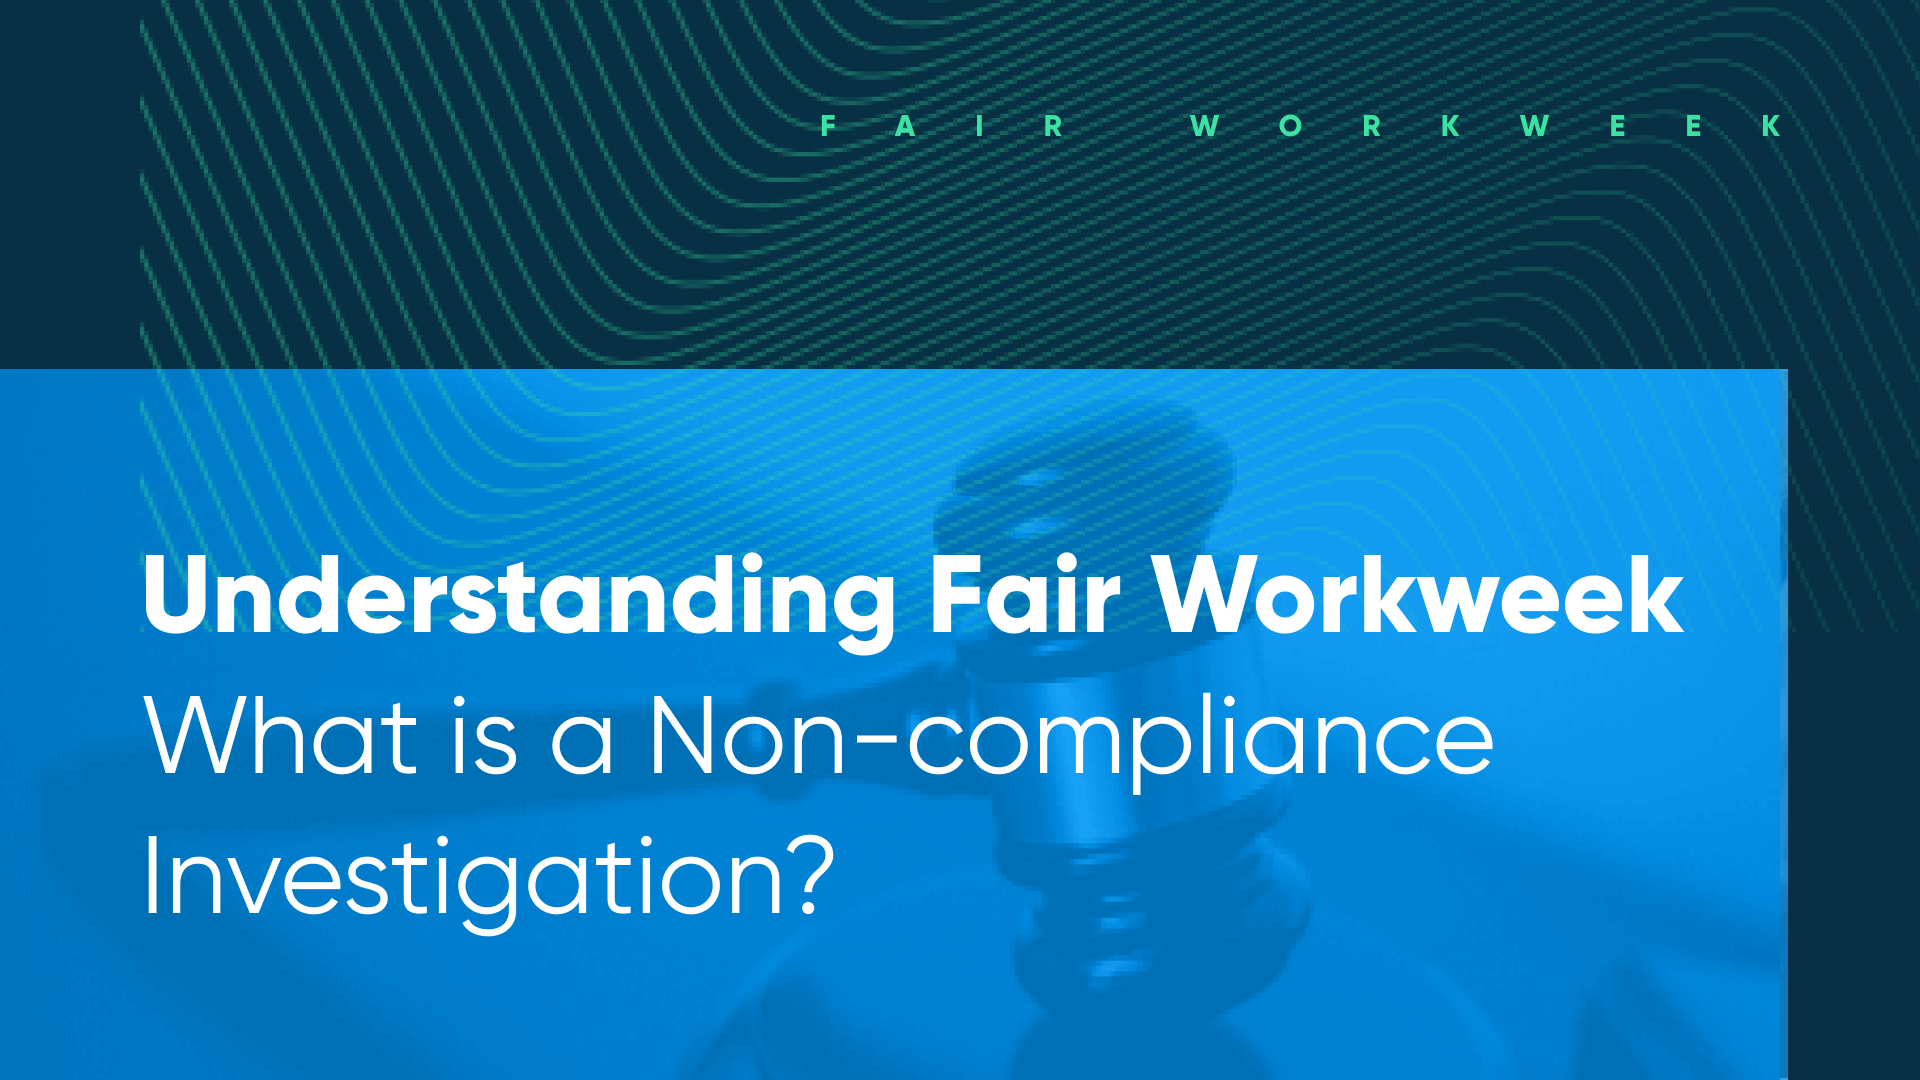 what is a fair workweek non-compliance investigation